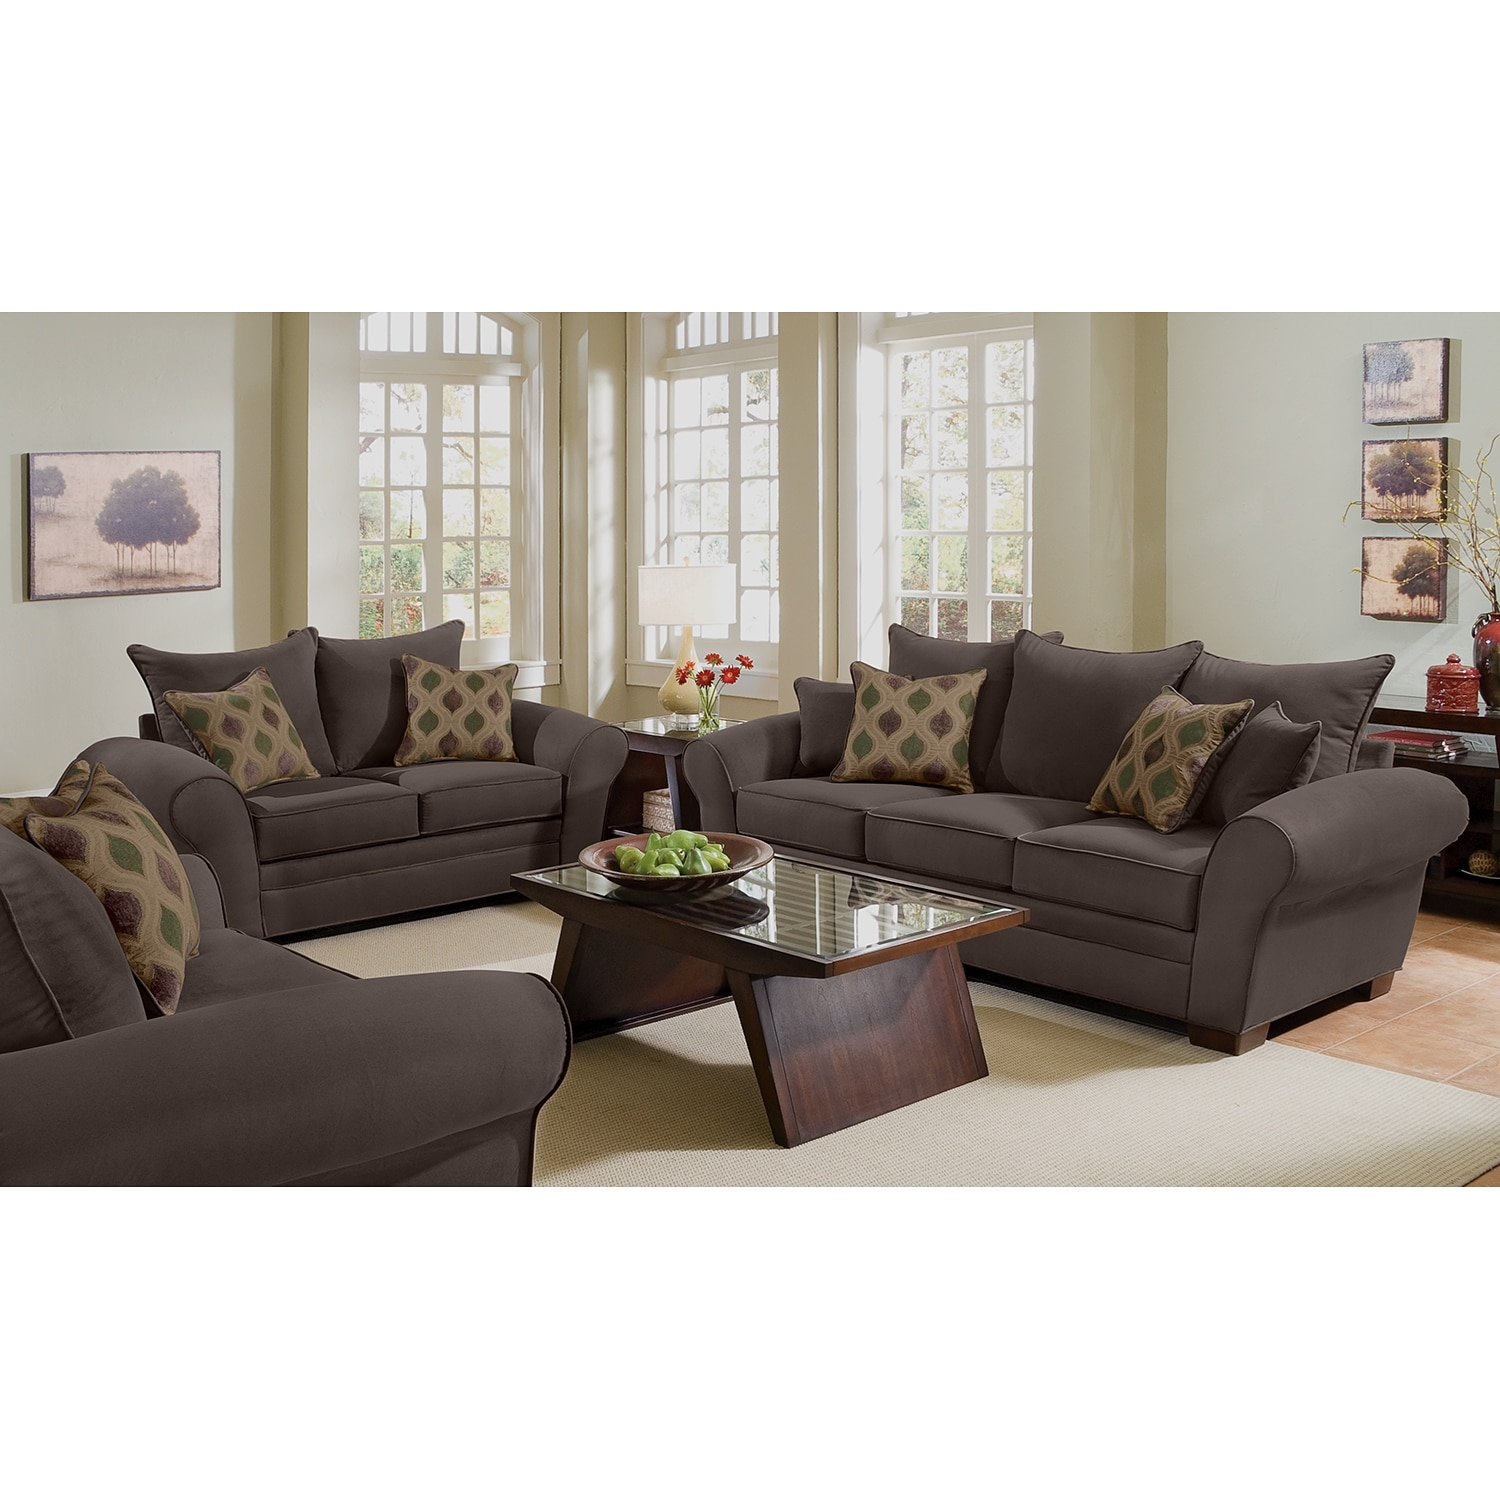 Rendezvous Sofa And Loveseat Set Chocolate Value City Furniture